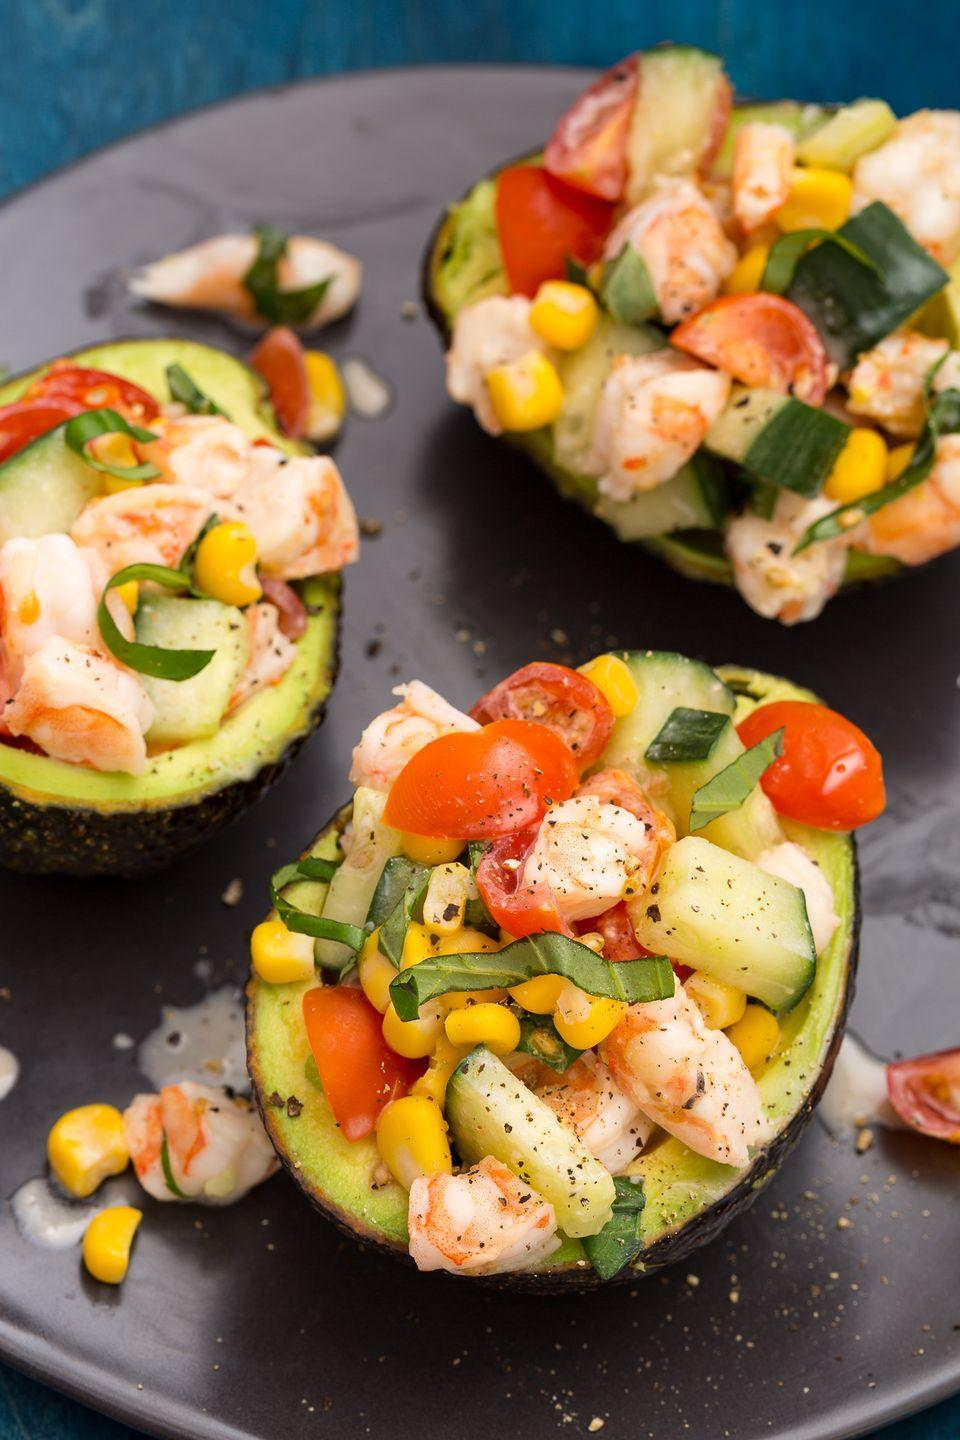 "<p>Go ahead and top these babies off with crumbled feta, you deserve it.</p><p>Get the recipe from <a href=""/cooking/recipe-ideas/recipes/a47066/shrimp-salad-stuffed-avocado-recipe/"" data-ylk=""slk:Delish"" class=""link rapid-noclick-resp"">Delish</a>.</p>"